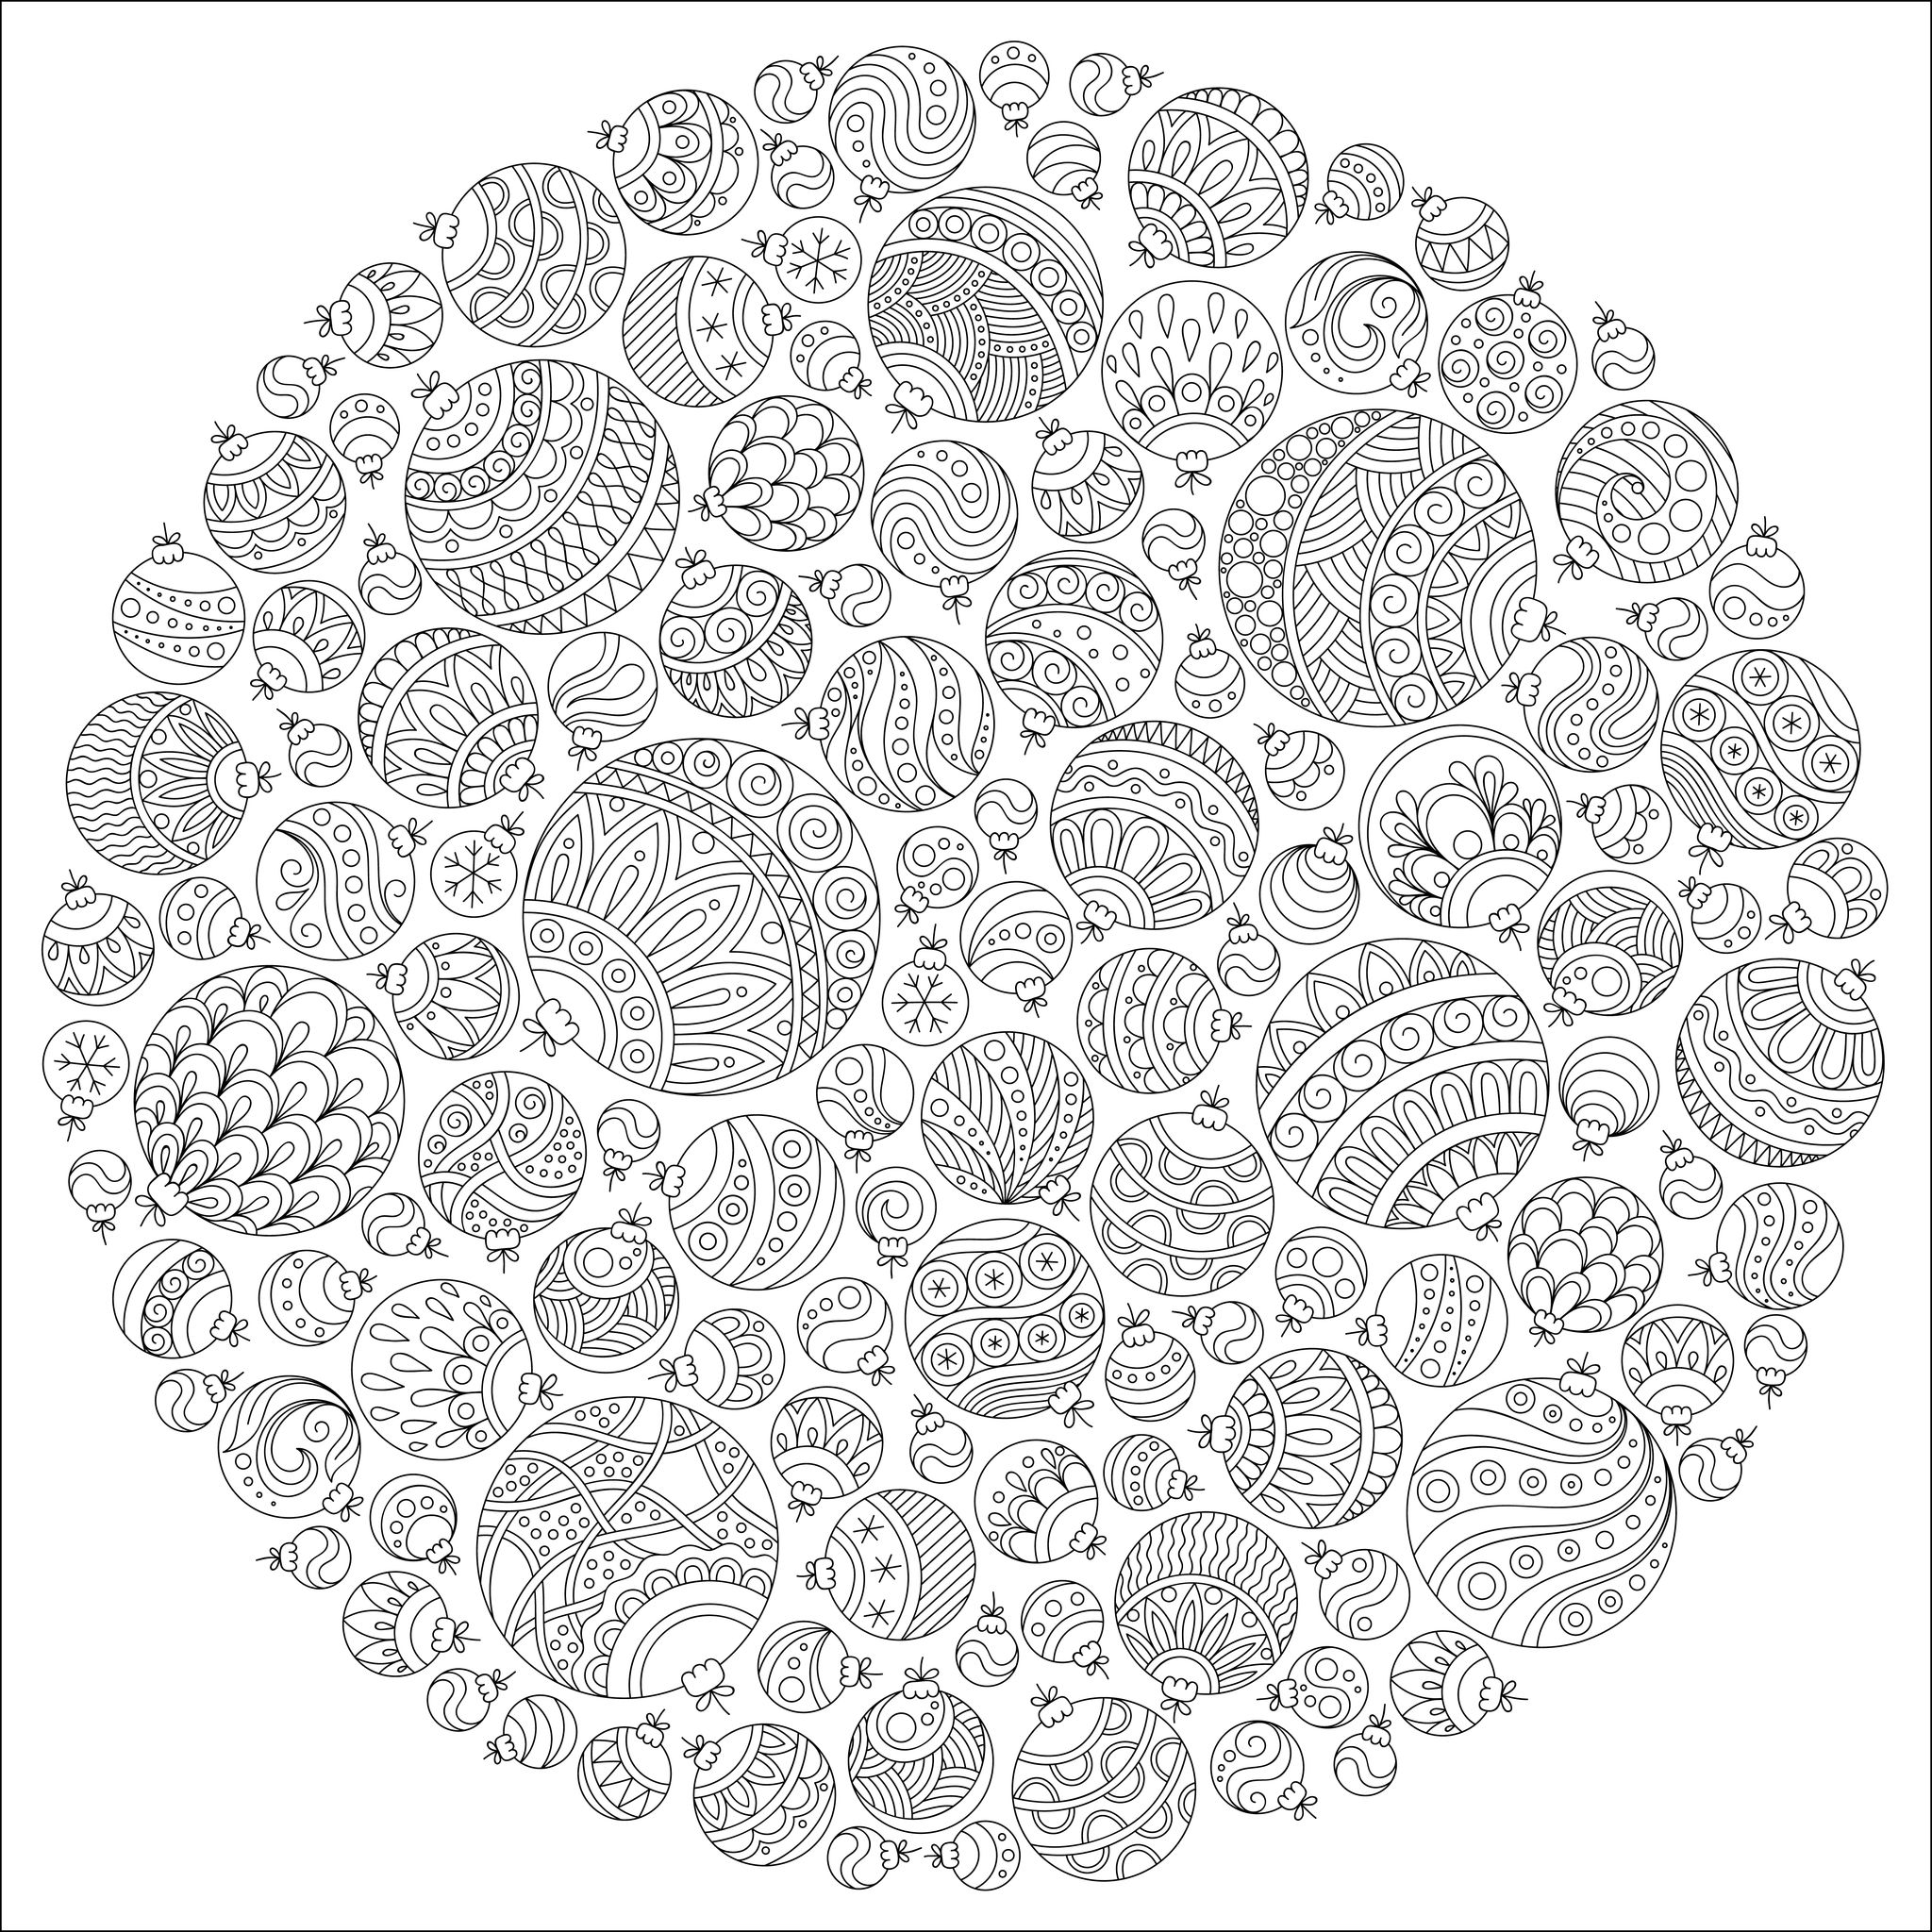 Coloriage No l Noel mandalas boules sapin pattern for coloring book christmas hand drawn decorative elements in vector